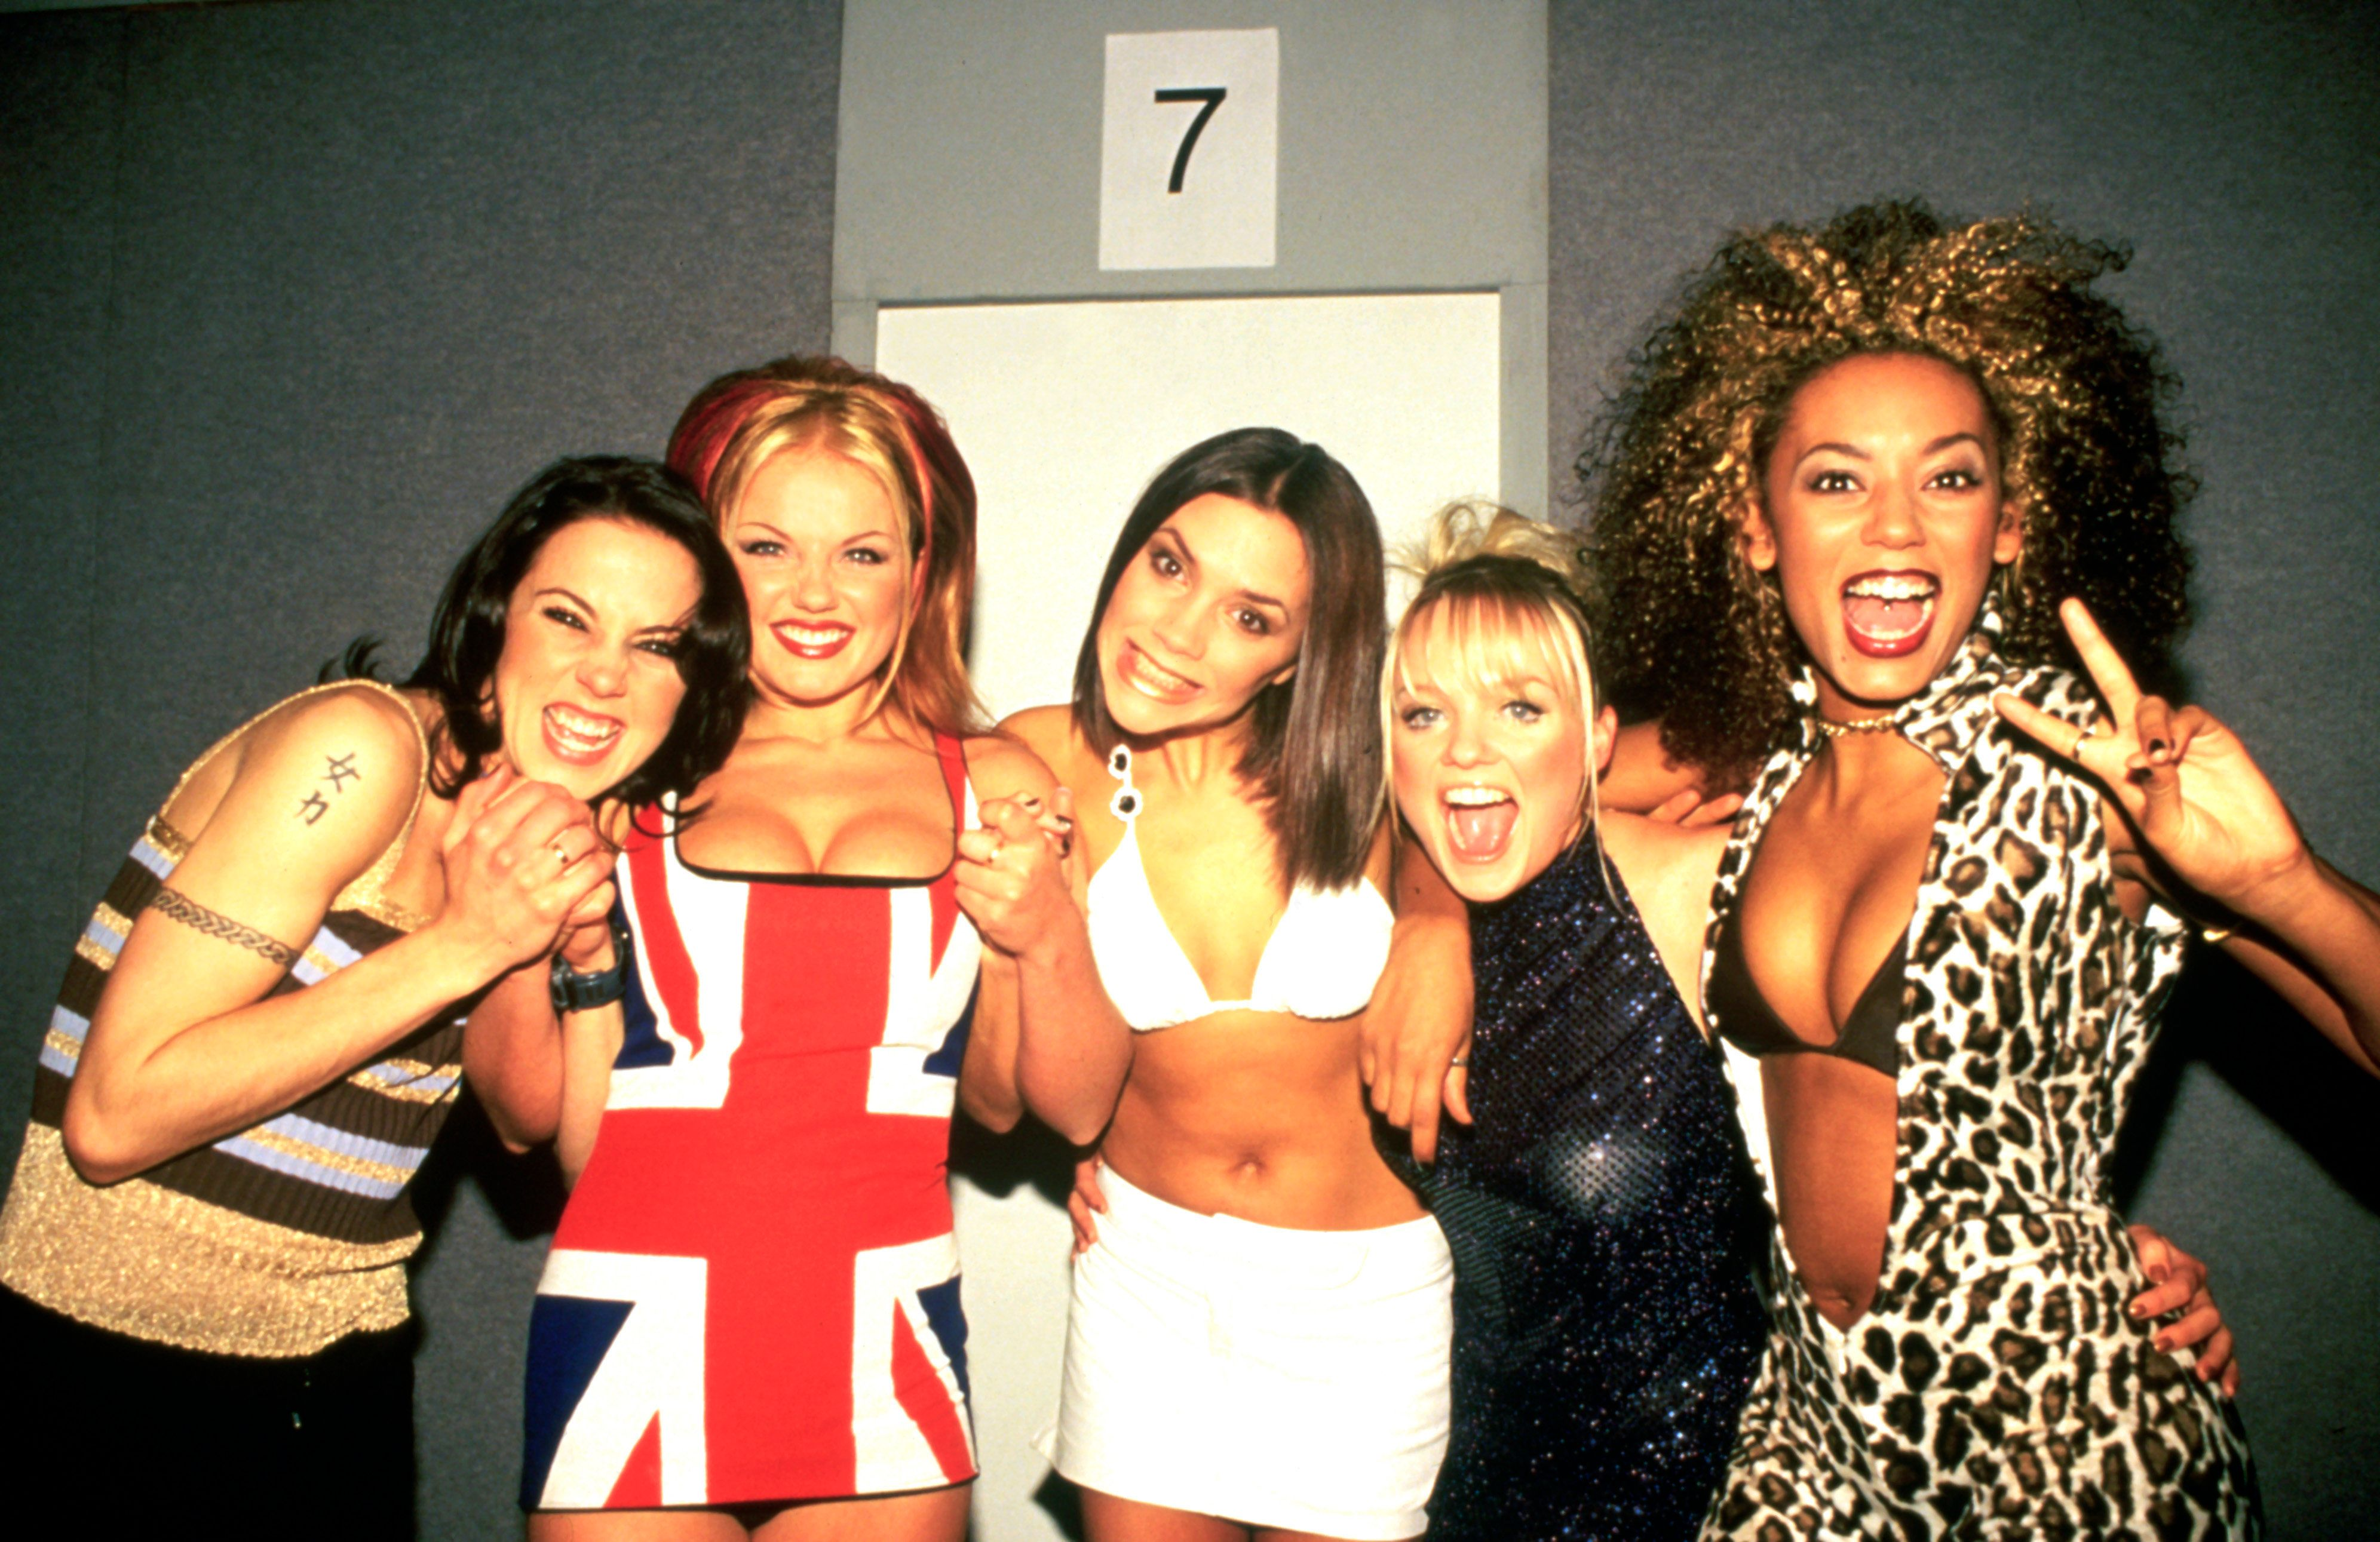 The liaison happened during the Spice Girls'